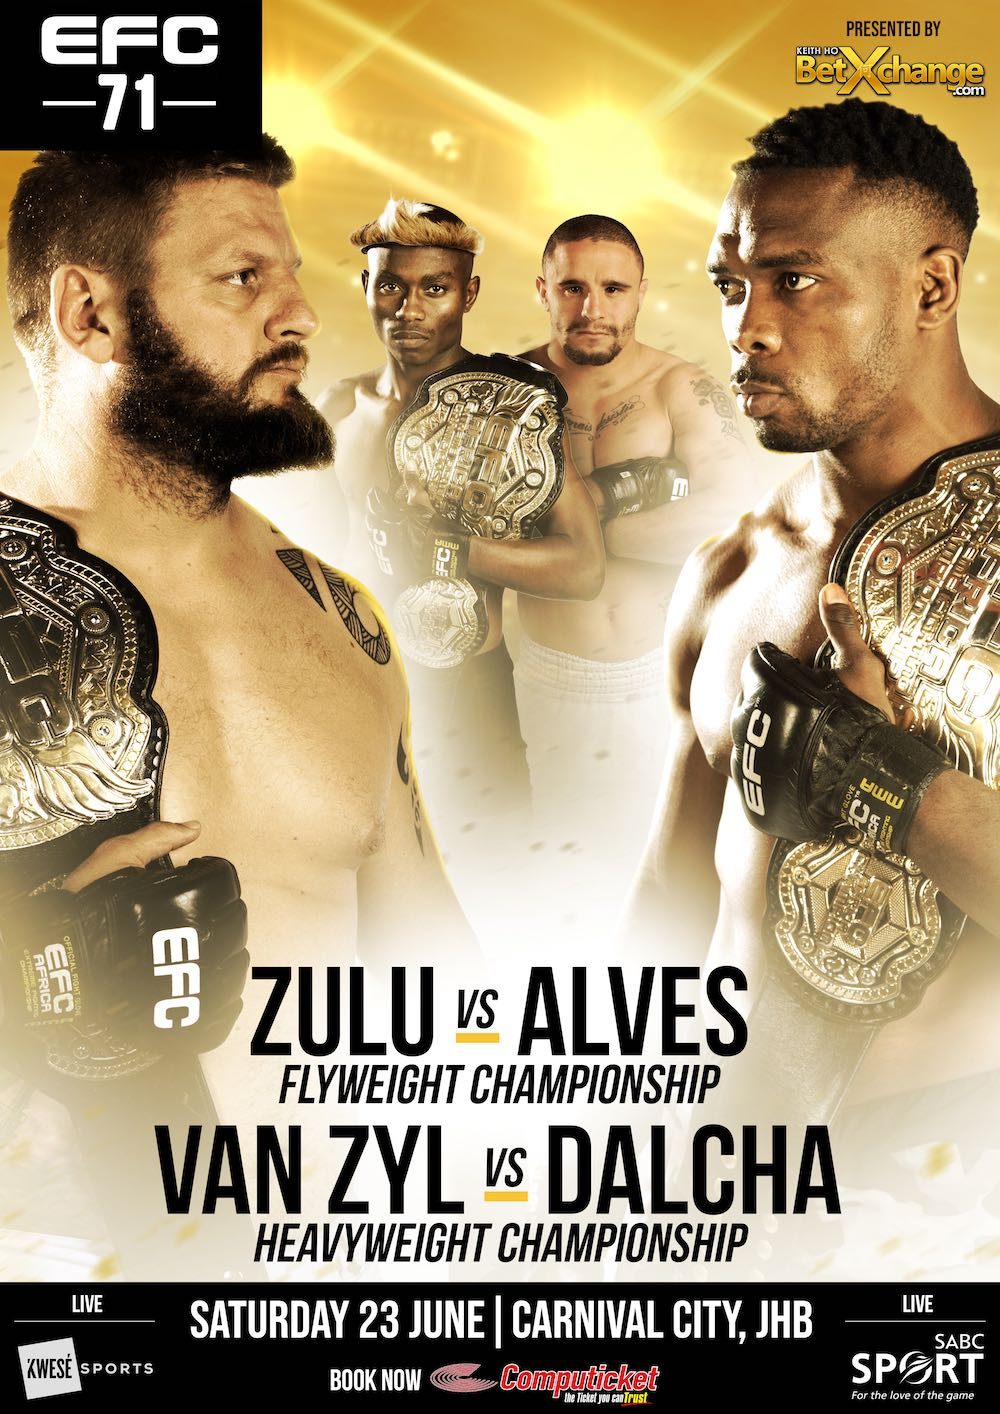 See the full MMA fight card for EFC 71 taking place at Carnival City